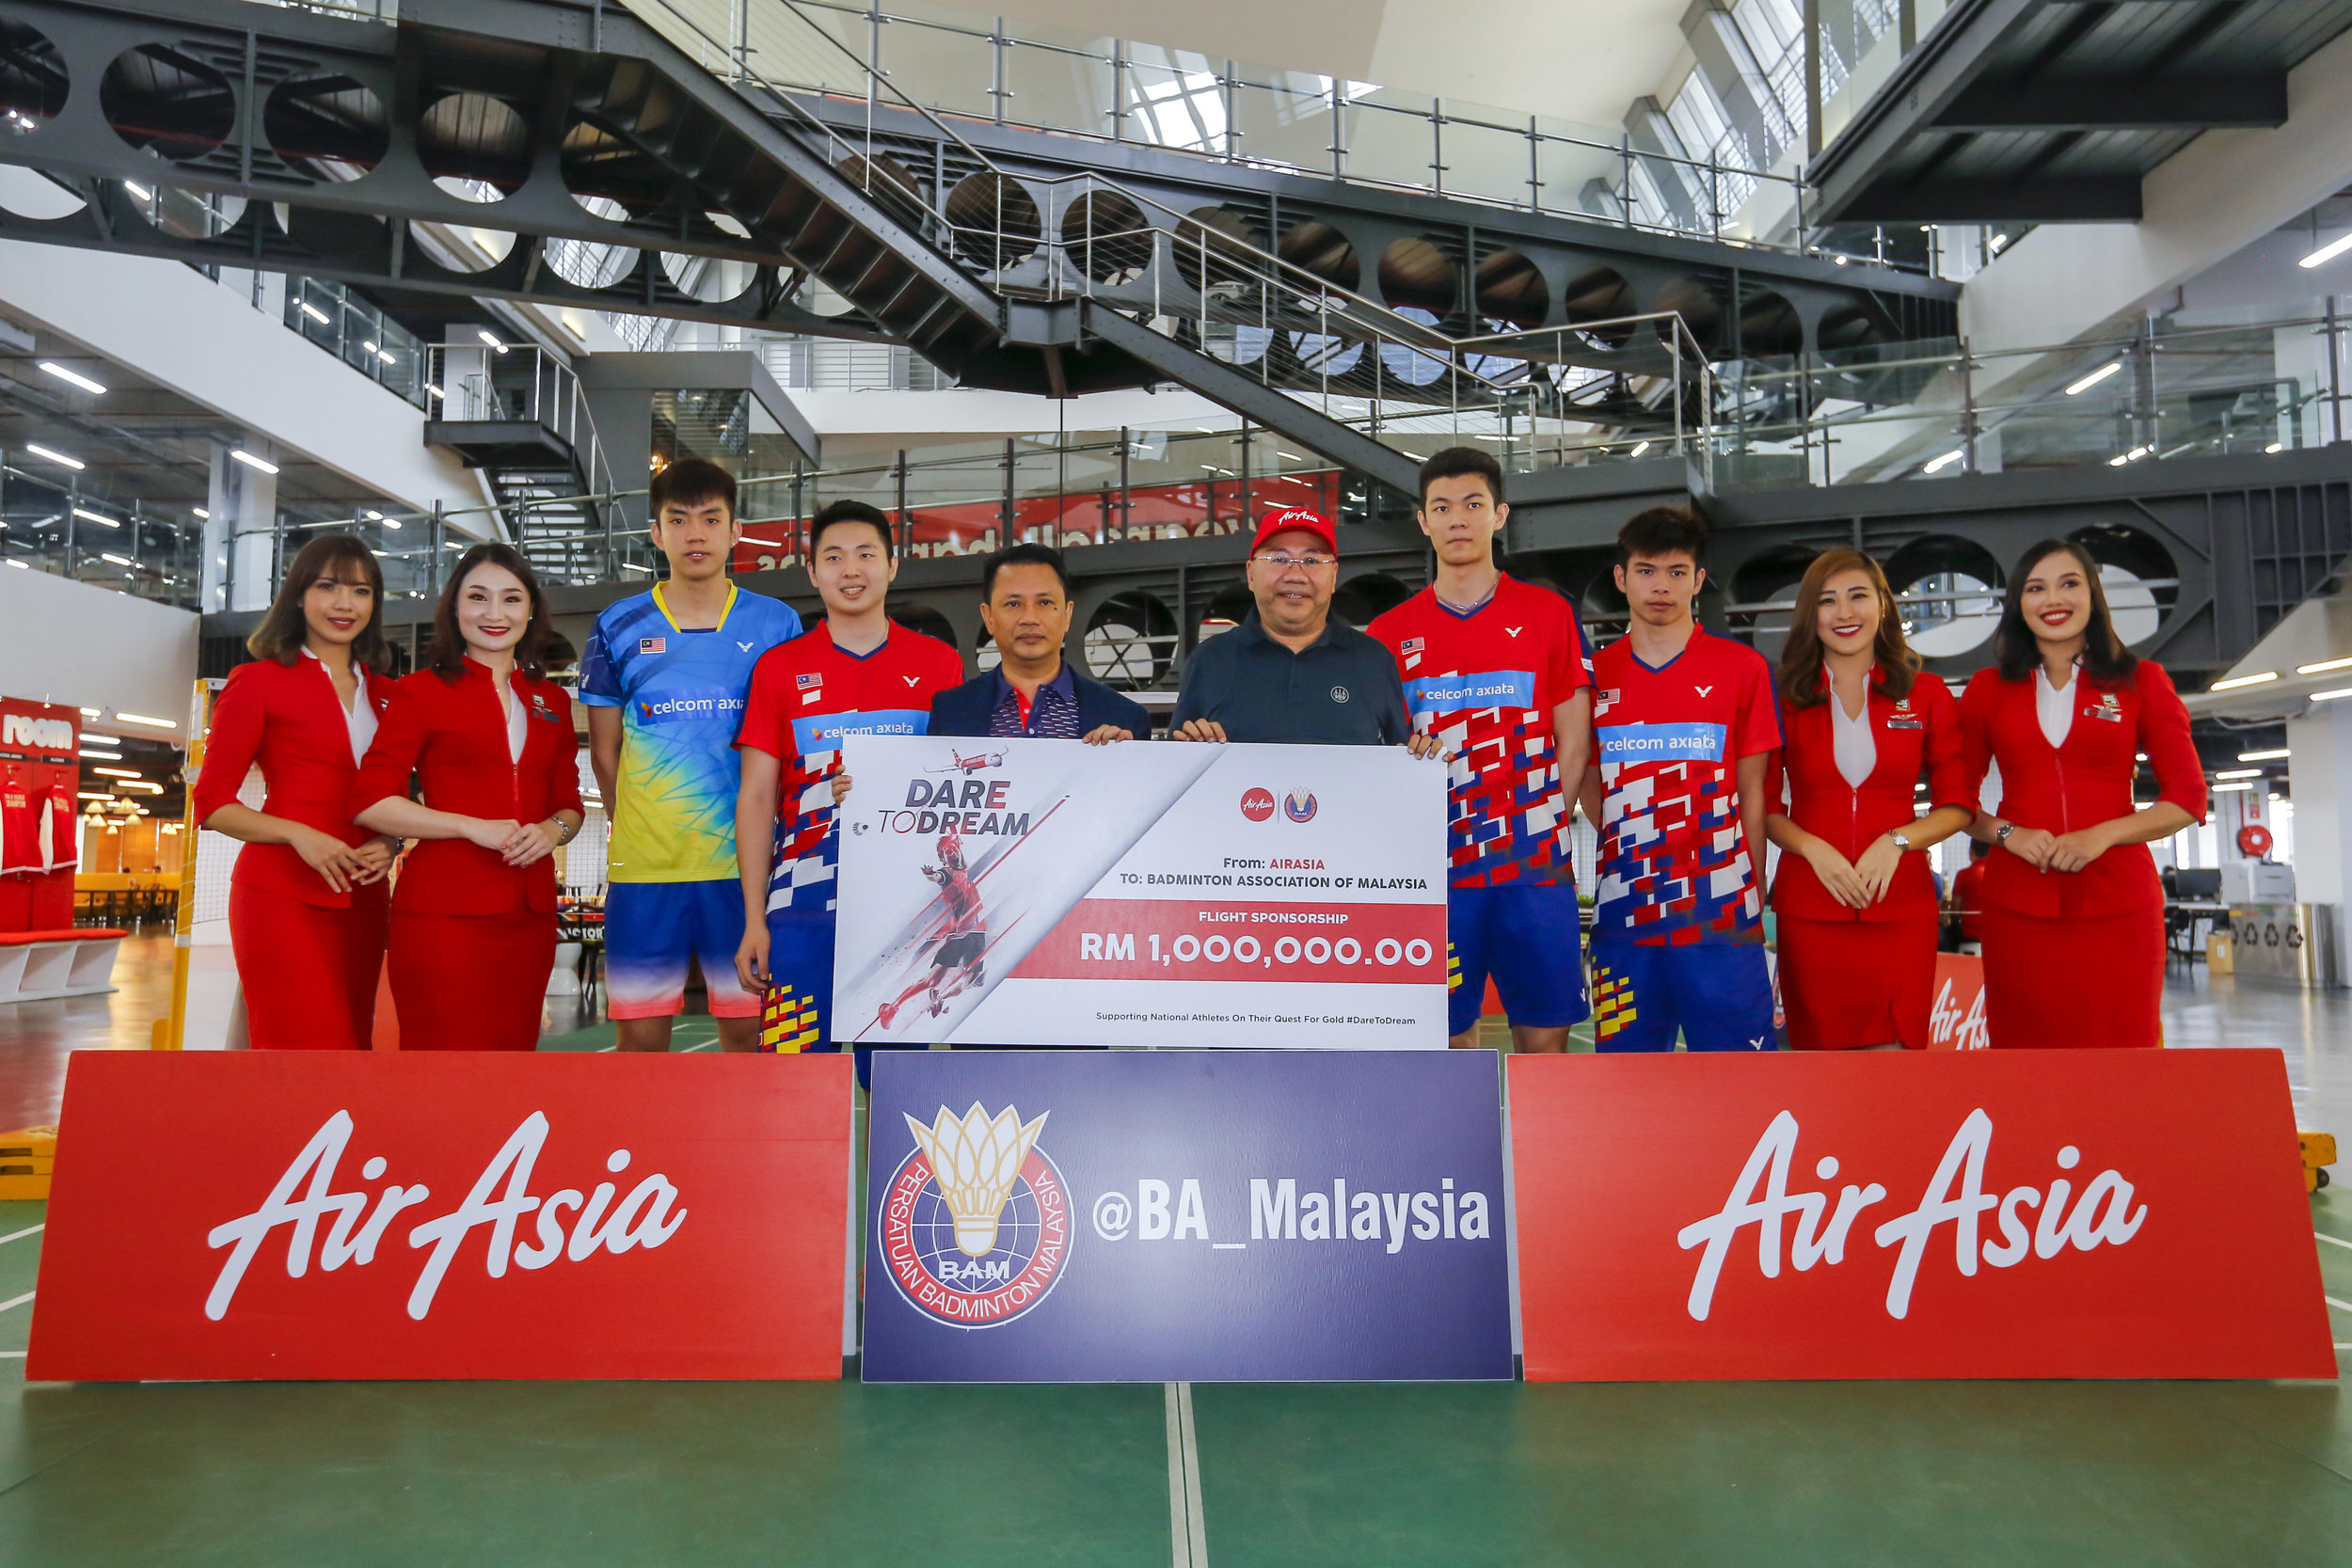 Photo Caption: BAM President Dato' Sri Mohamad Norza Zakaria (middle left)and Executive Chairman of AirAsia Group Berhad and Group CEO of AirAsia X, Datuk Kamarudin Meranun (middle right)flanked by national badminton players and cabin crew at the mock cheque presentation ceremony today.